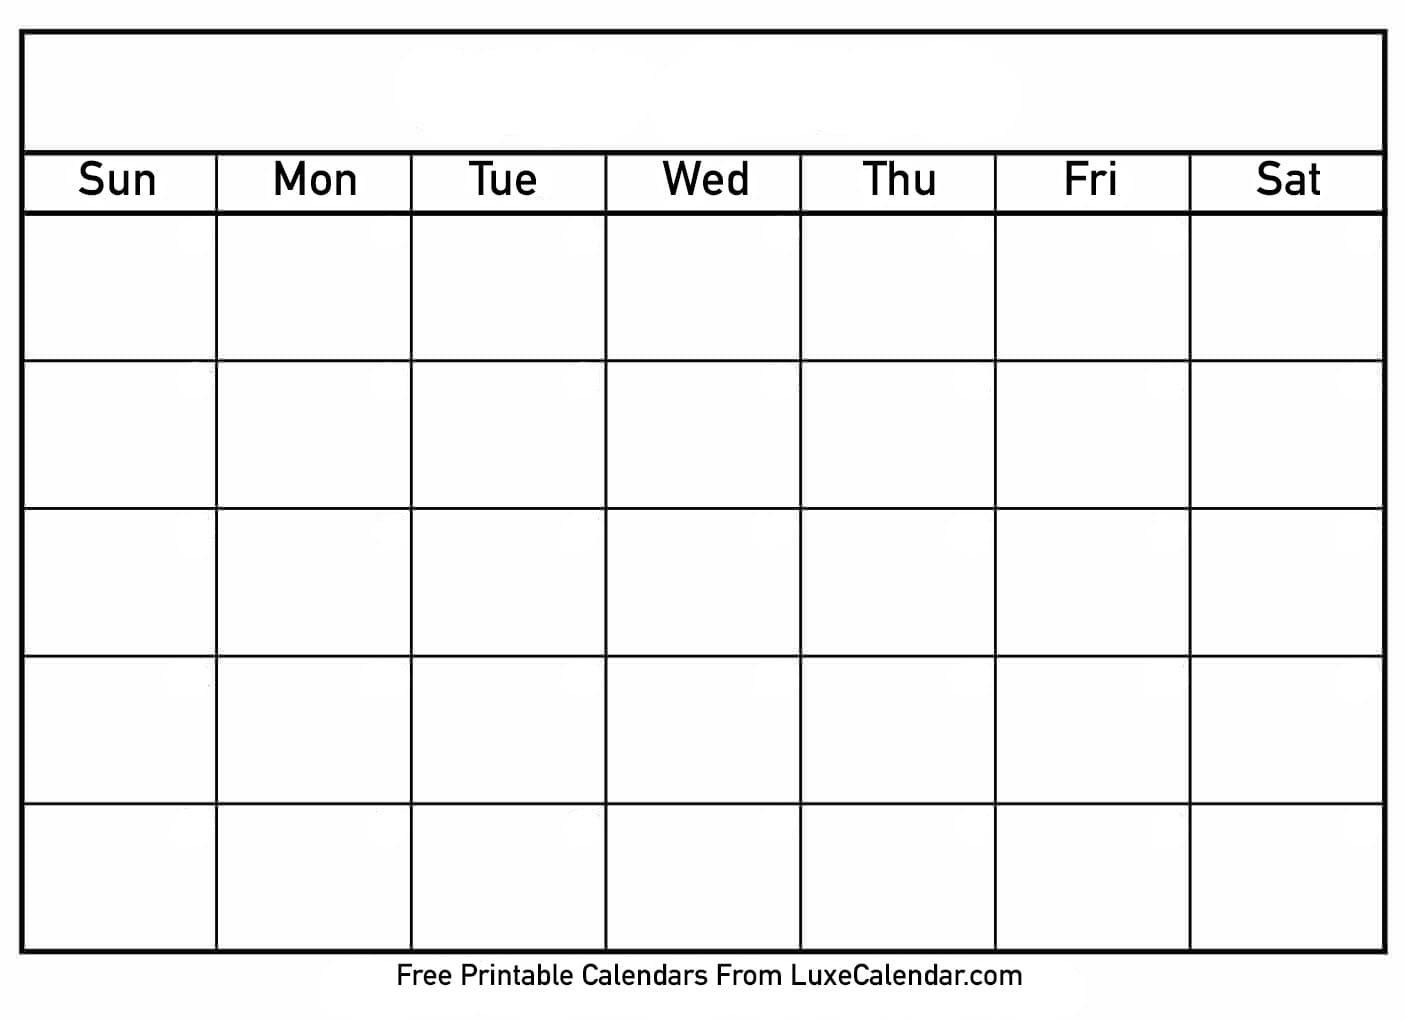 Blank Printable Calendar - Luxe Calendar within Blank One Month Calendar Template